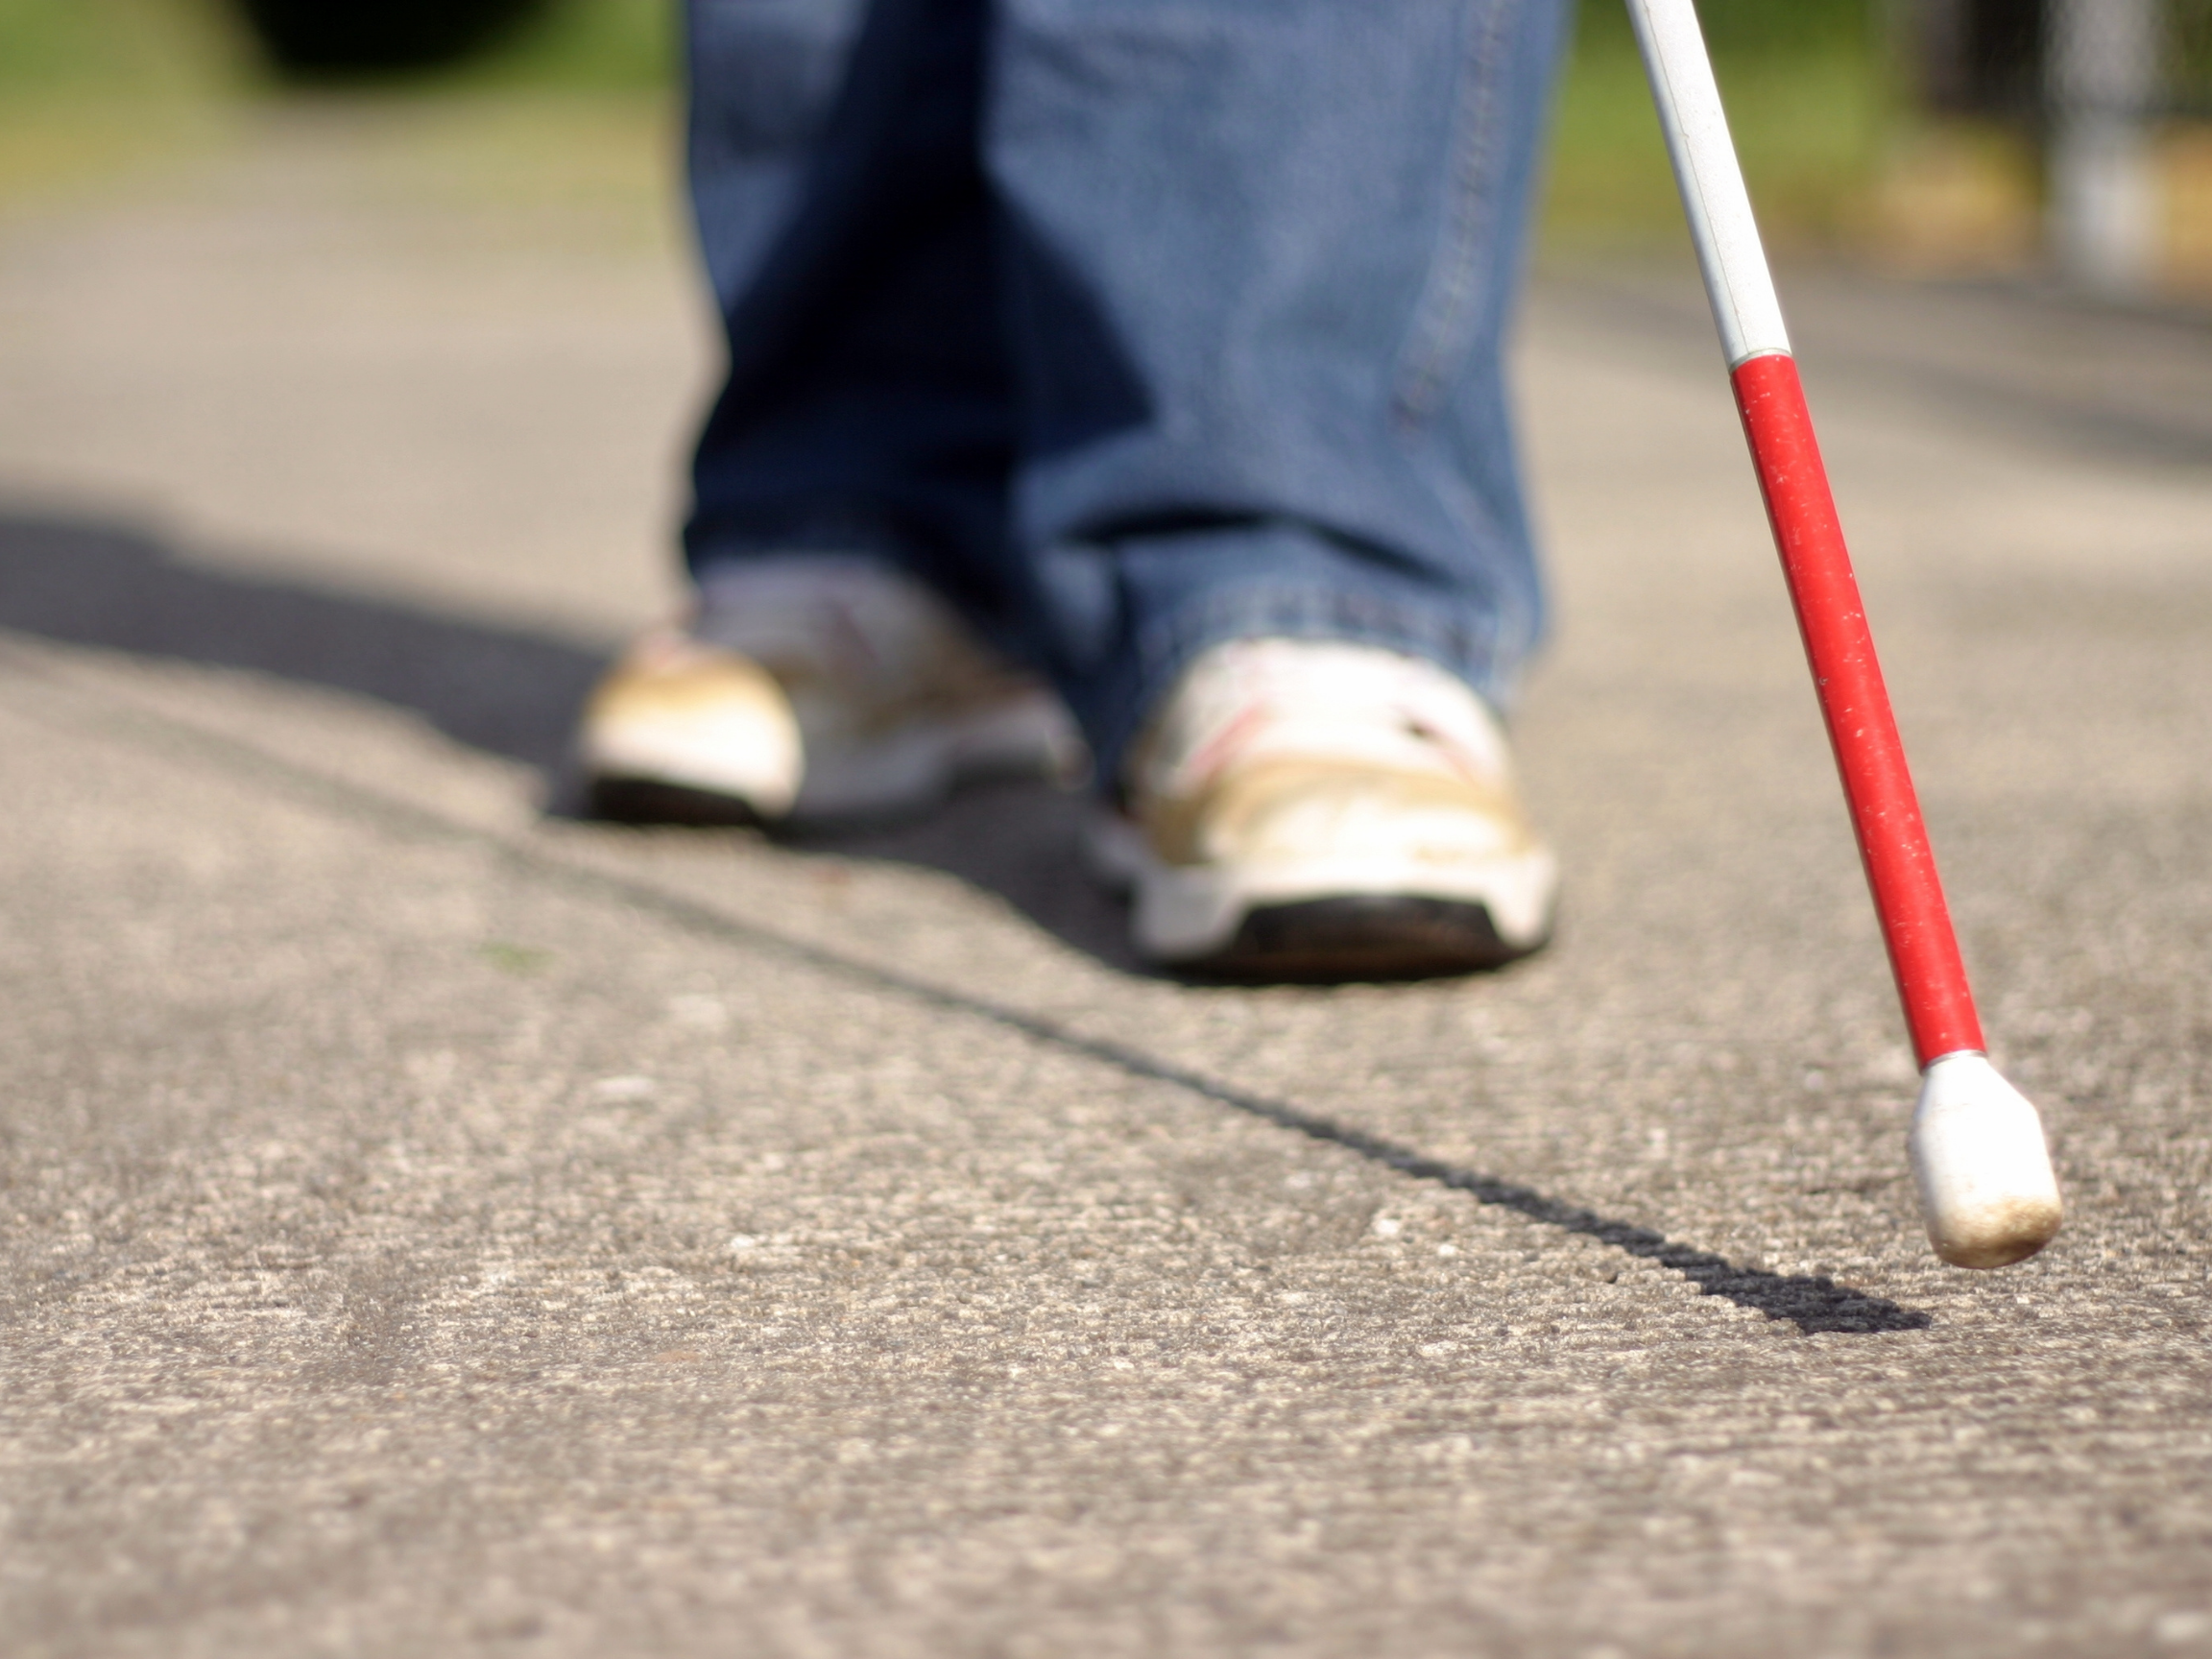 Bottom section of a white cane extended forward the tip above the above the pavement, in the background a faded view of a person's jeans and sneakers.